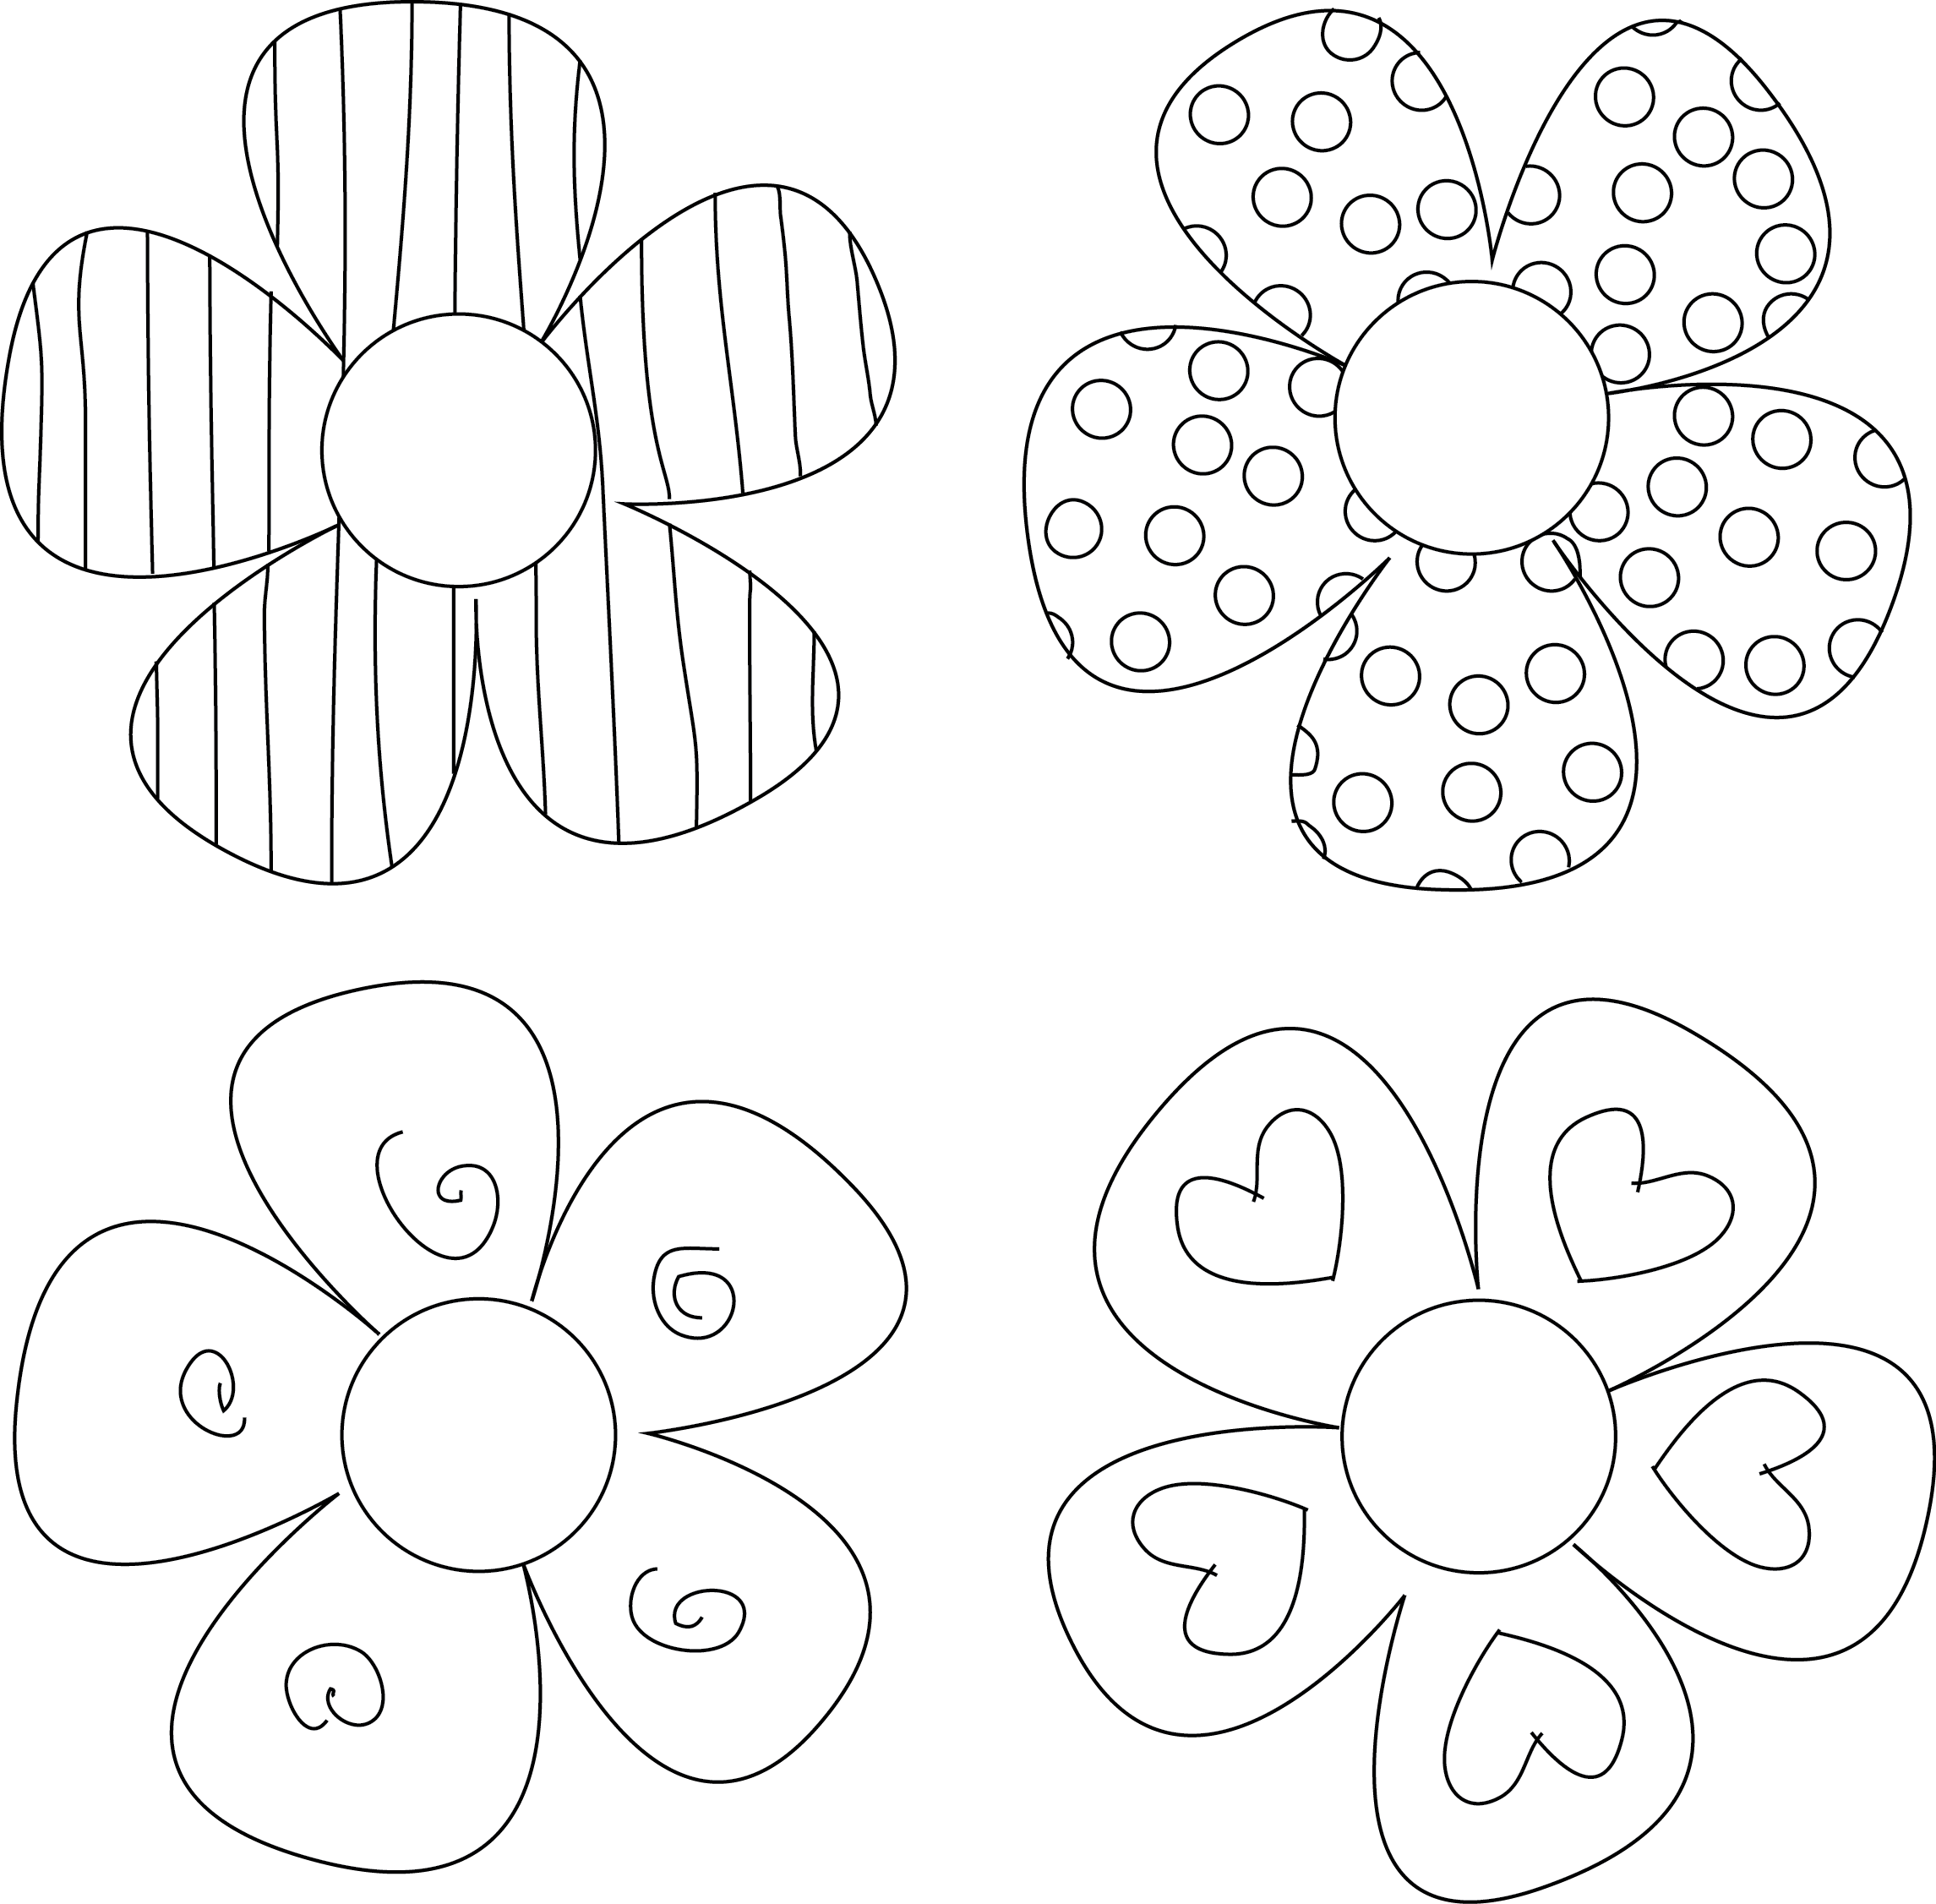 photo about Free Printable Flower Templates titled Do-it-yourself Flower Tutorials On your own Need to Consider Paper Cloth Bouquets